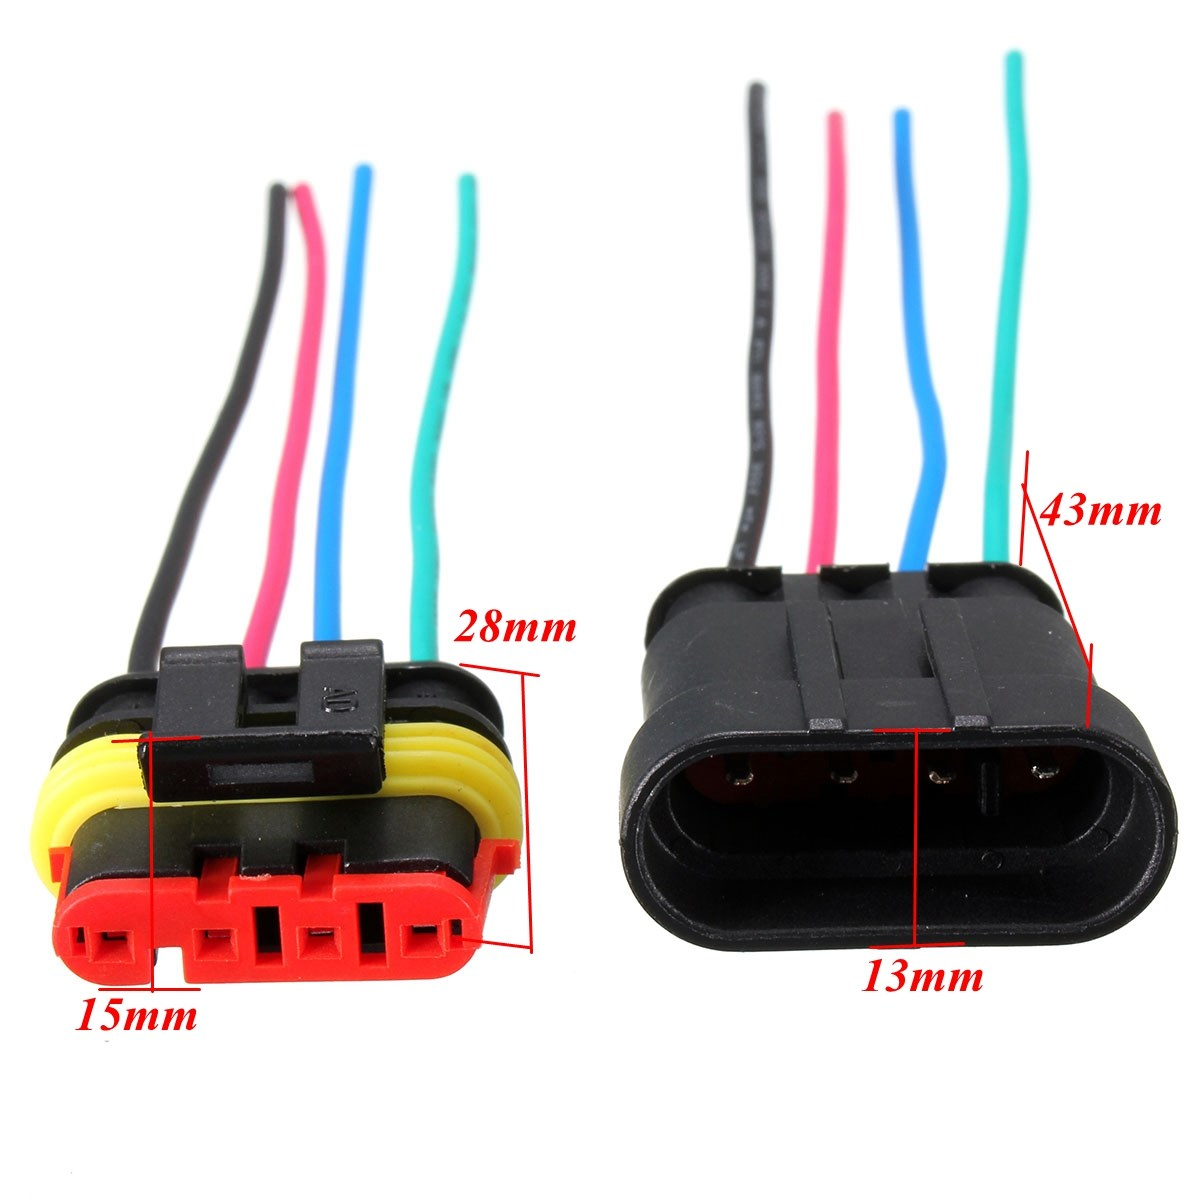 1 Set 2 3 4 5 6 Pin Car Motorcycles Waterproof Electrical Way Auto Wire Harness Connector View Plug W 10cm Male Female In Cables Adapters Sockets From